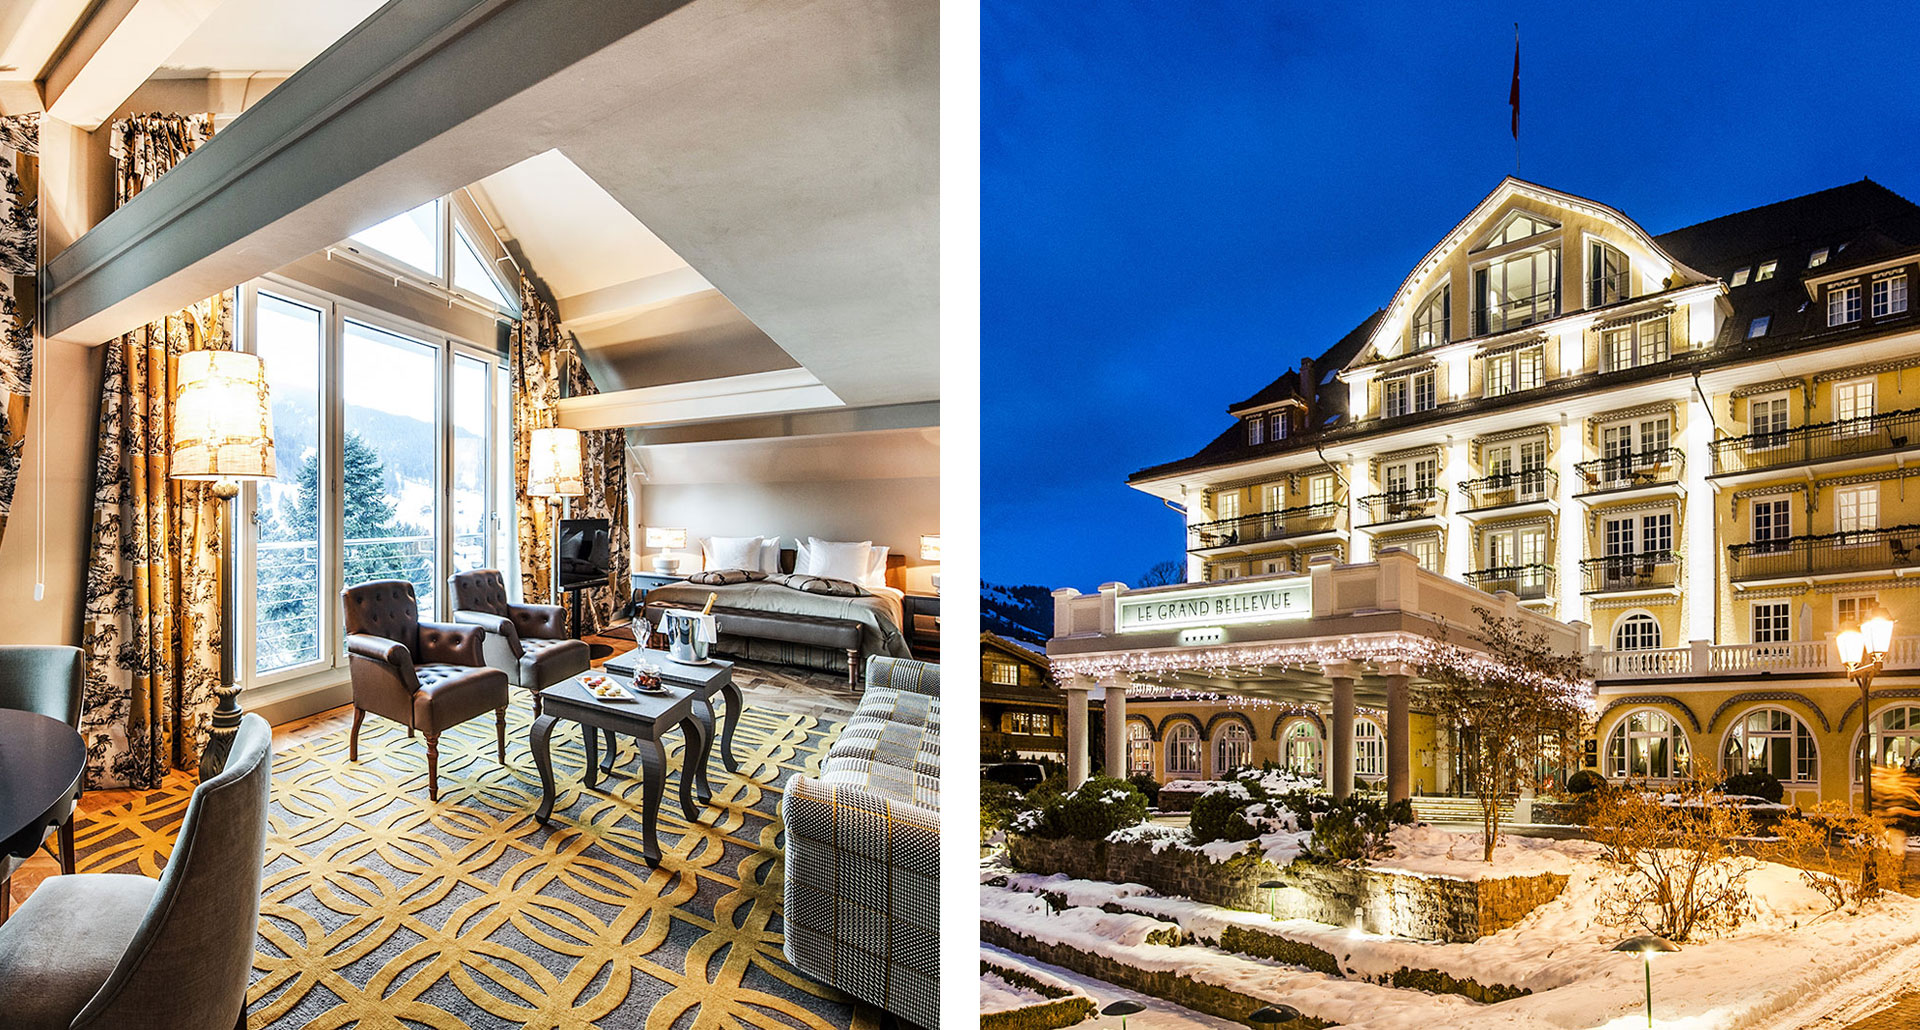 Le Grand Bellevue - boutique hotel in Gstaad